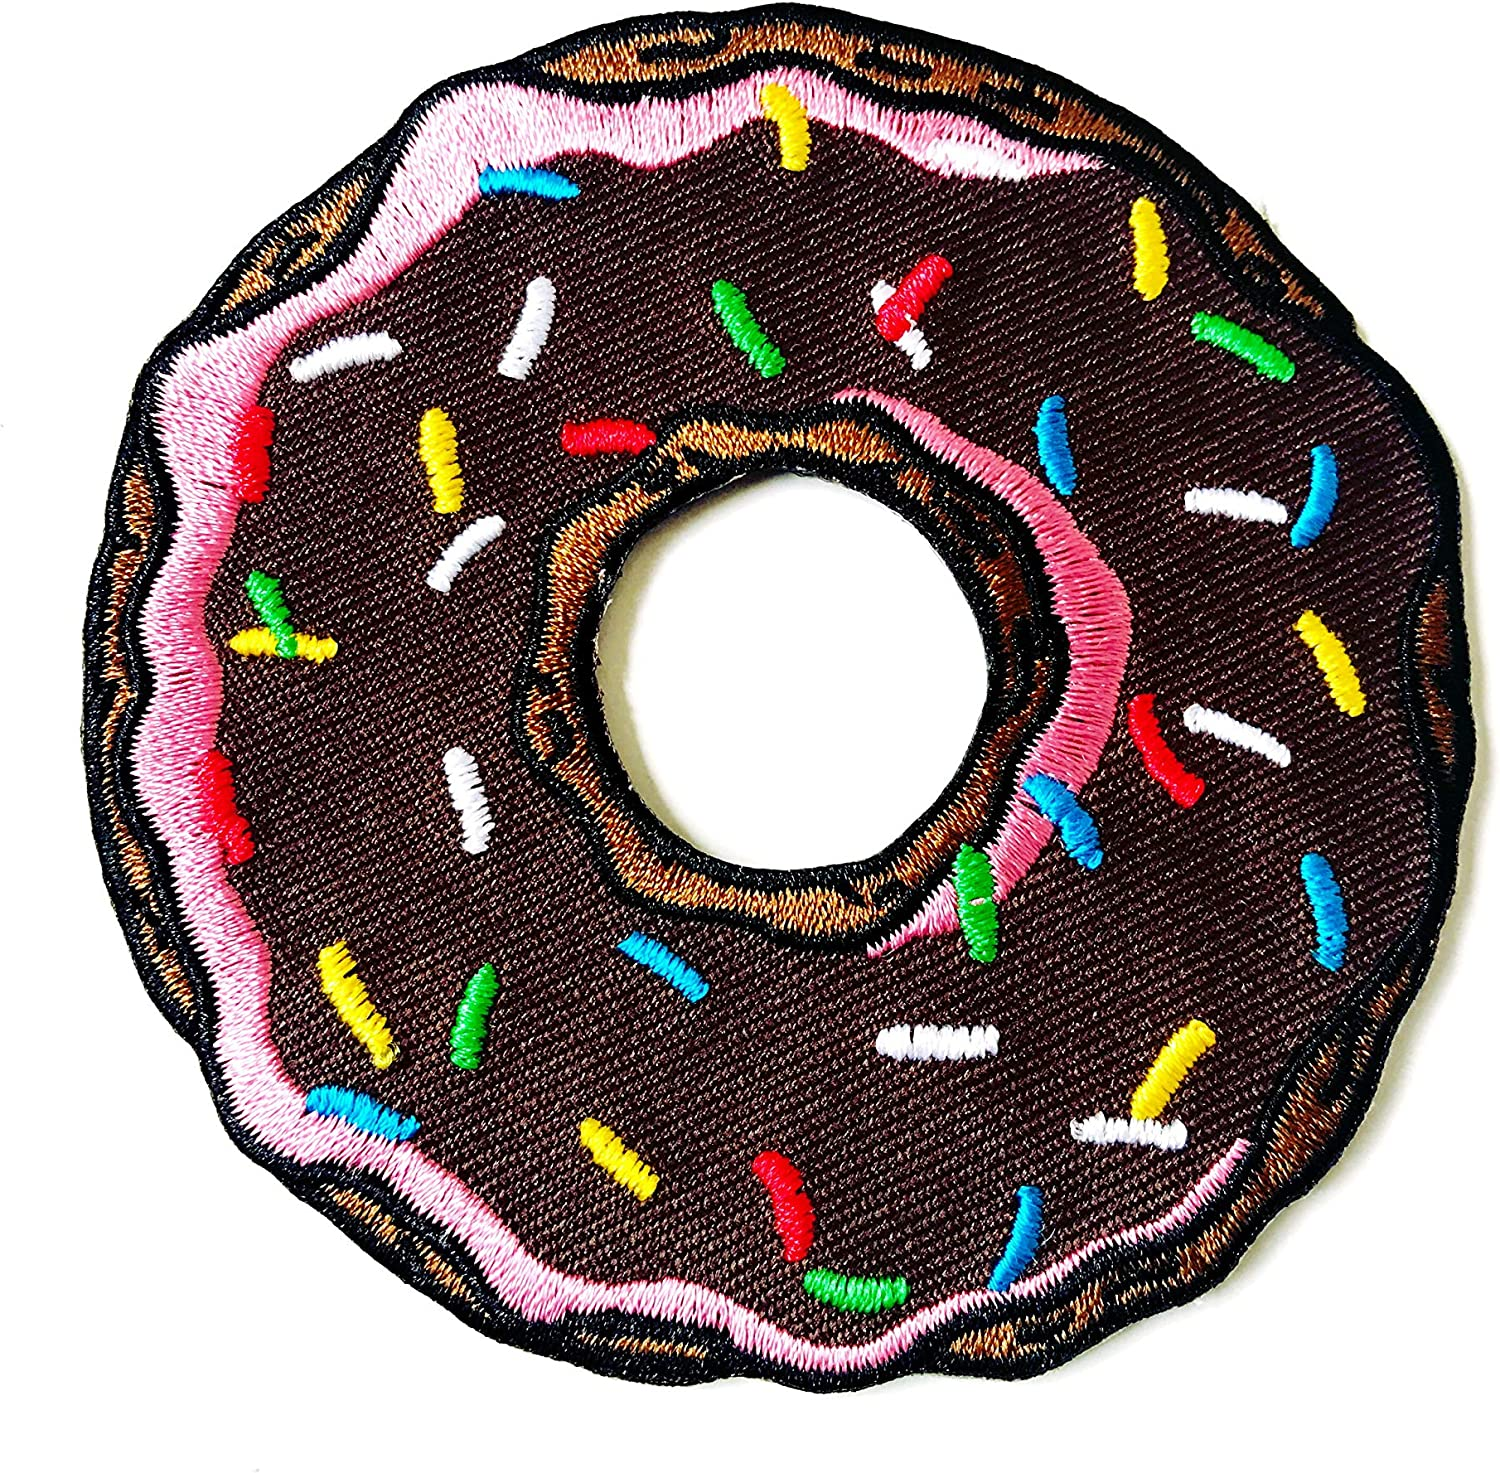 Chocolate Doughnut Donut Sweet T-Shirt Bags Jackets Jeans Clothes Embroidered Iron on Patch